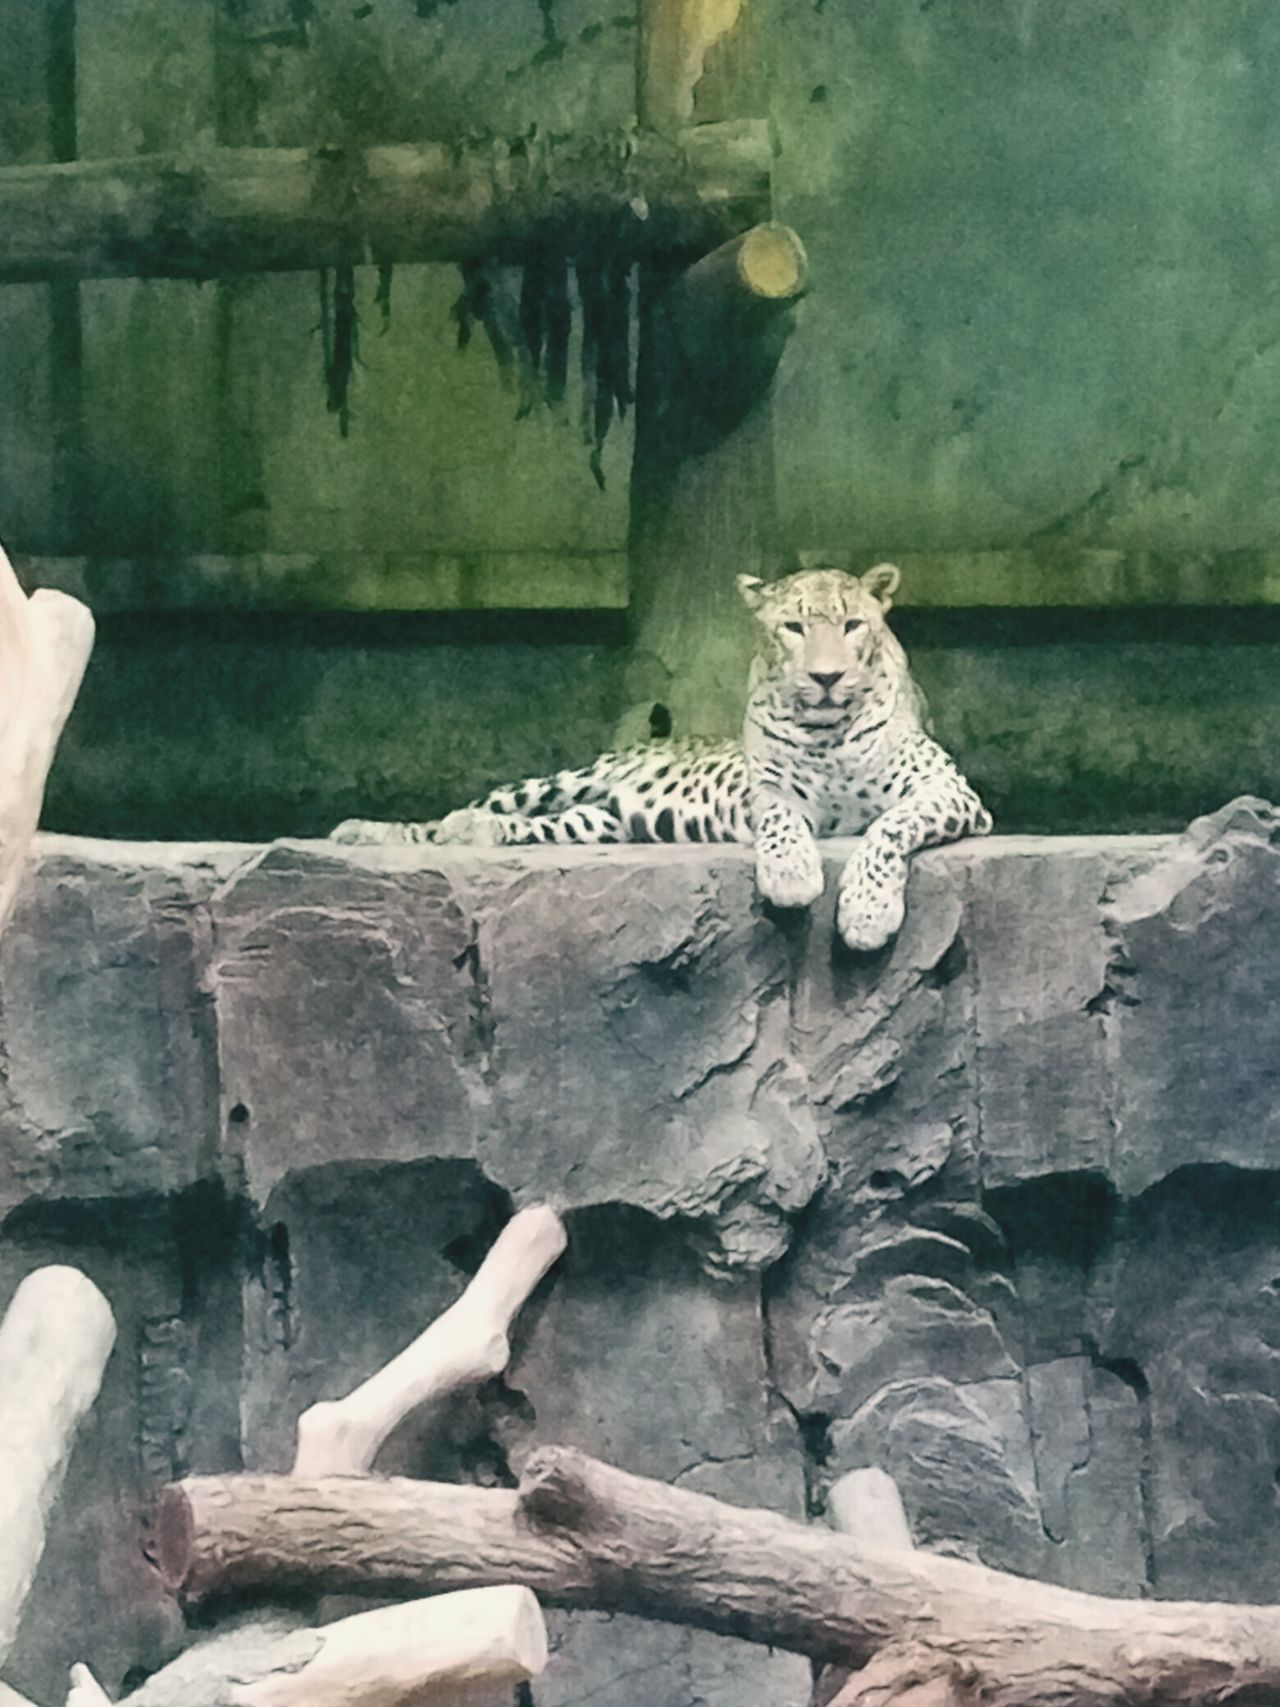 Leopard Animals In The Wild One Animal Leopard Animal Wildlife Animal Themes Day Nature Feline Mammal No People Endangered Species Beauty In Nature INDONESIA